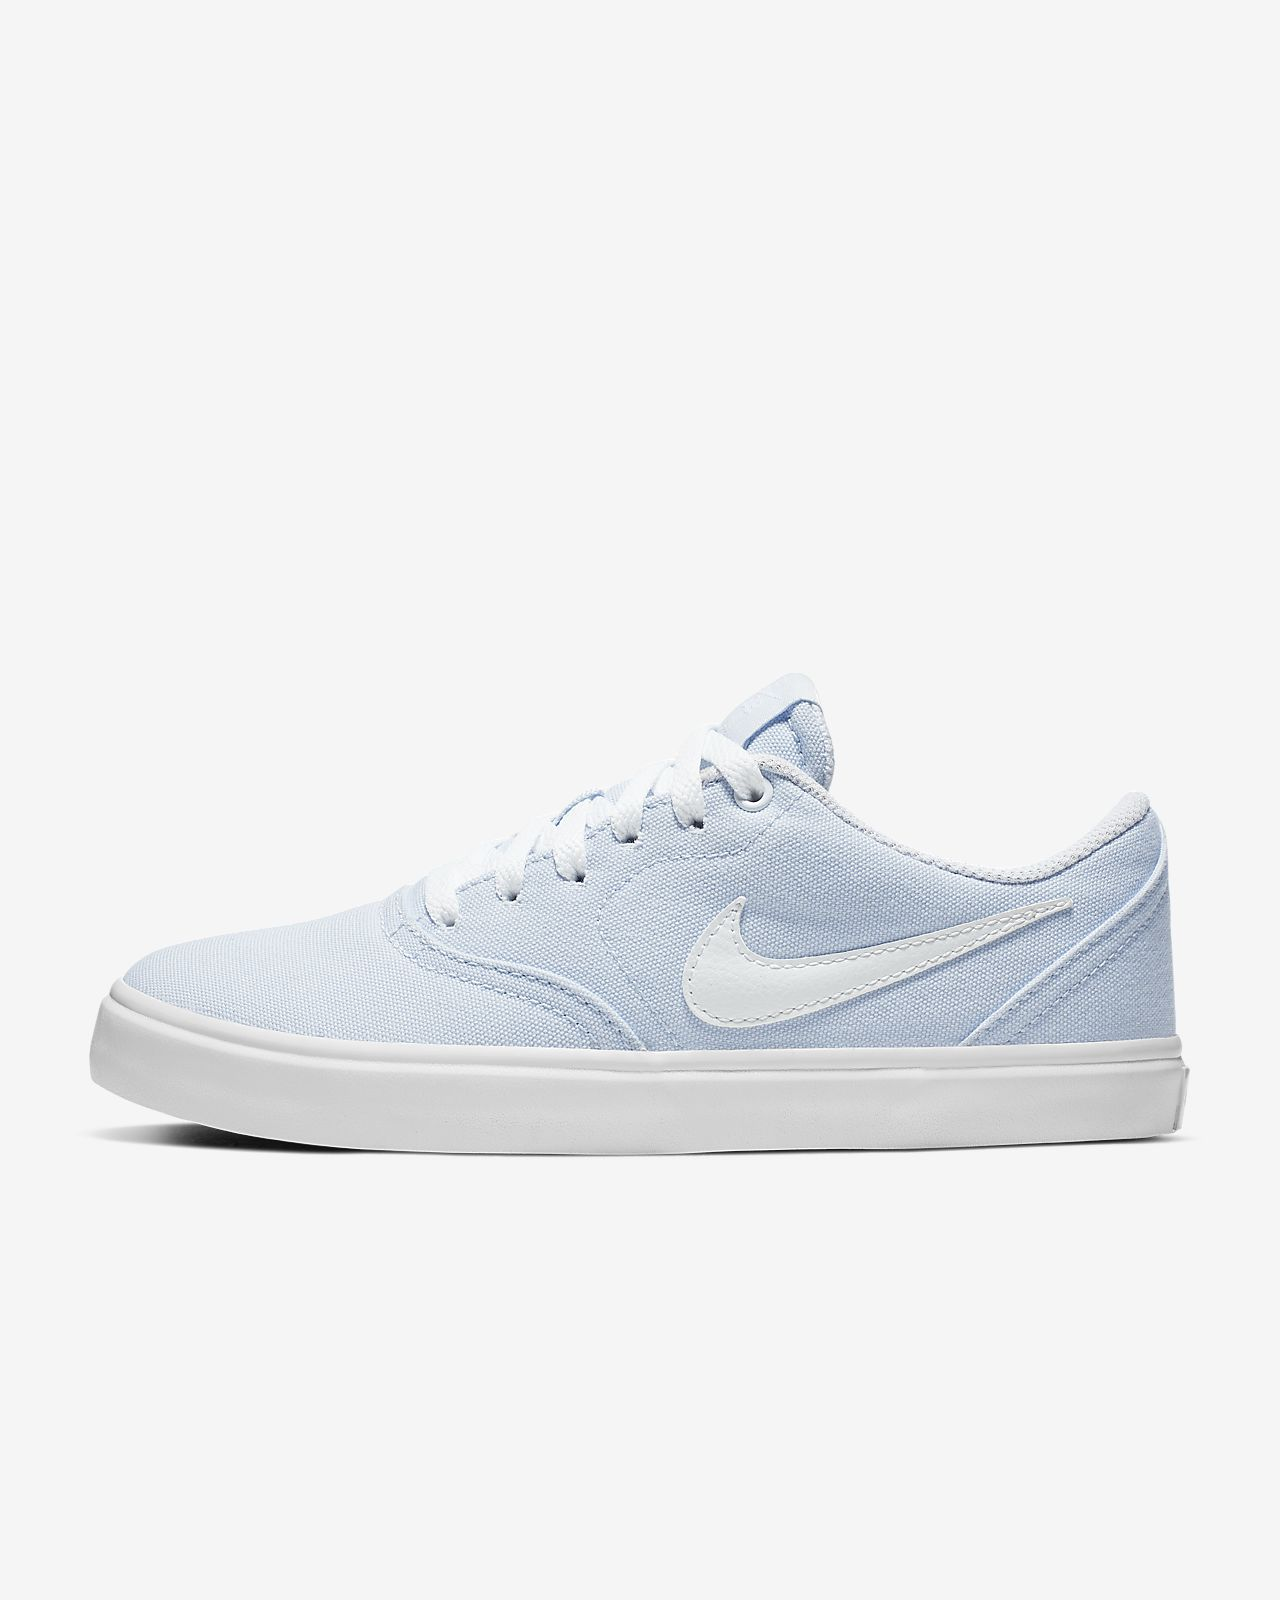 Nike SB Check Solarsoft Canvas Damen-Skateboardschuh